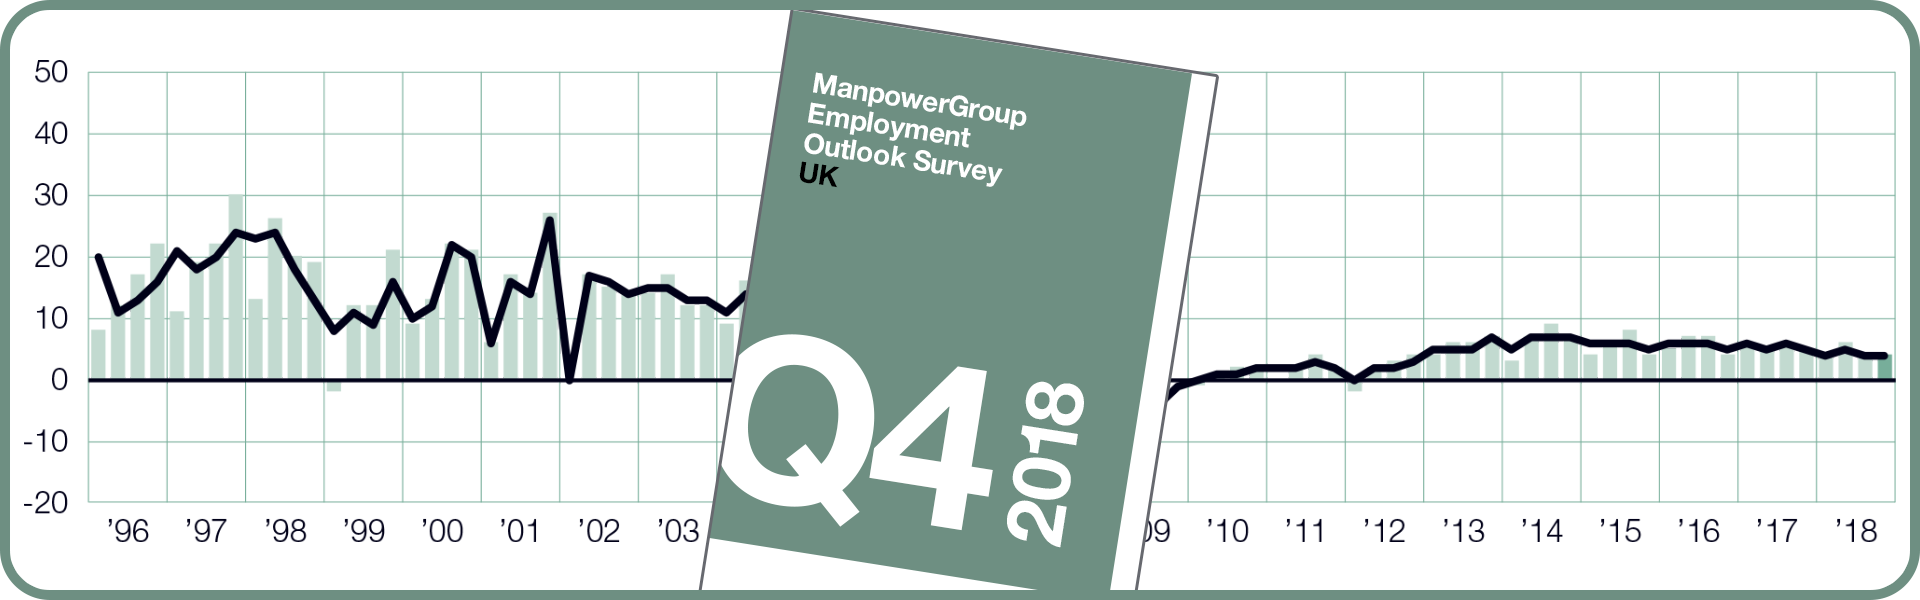 ManpowerGroup Employment Outlook Survey - Q4 2018